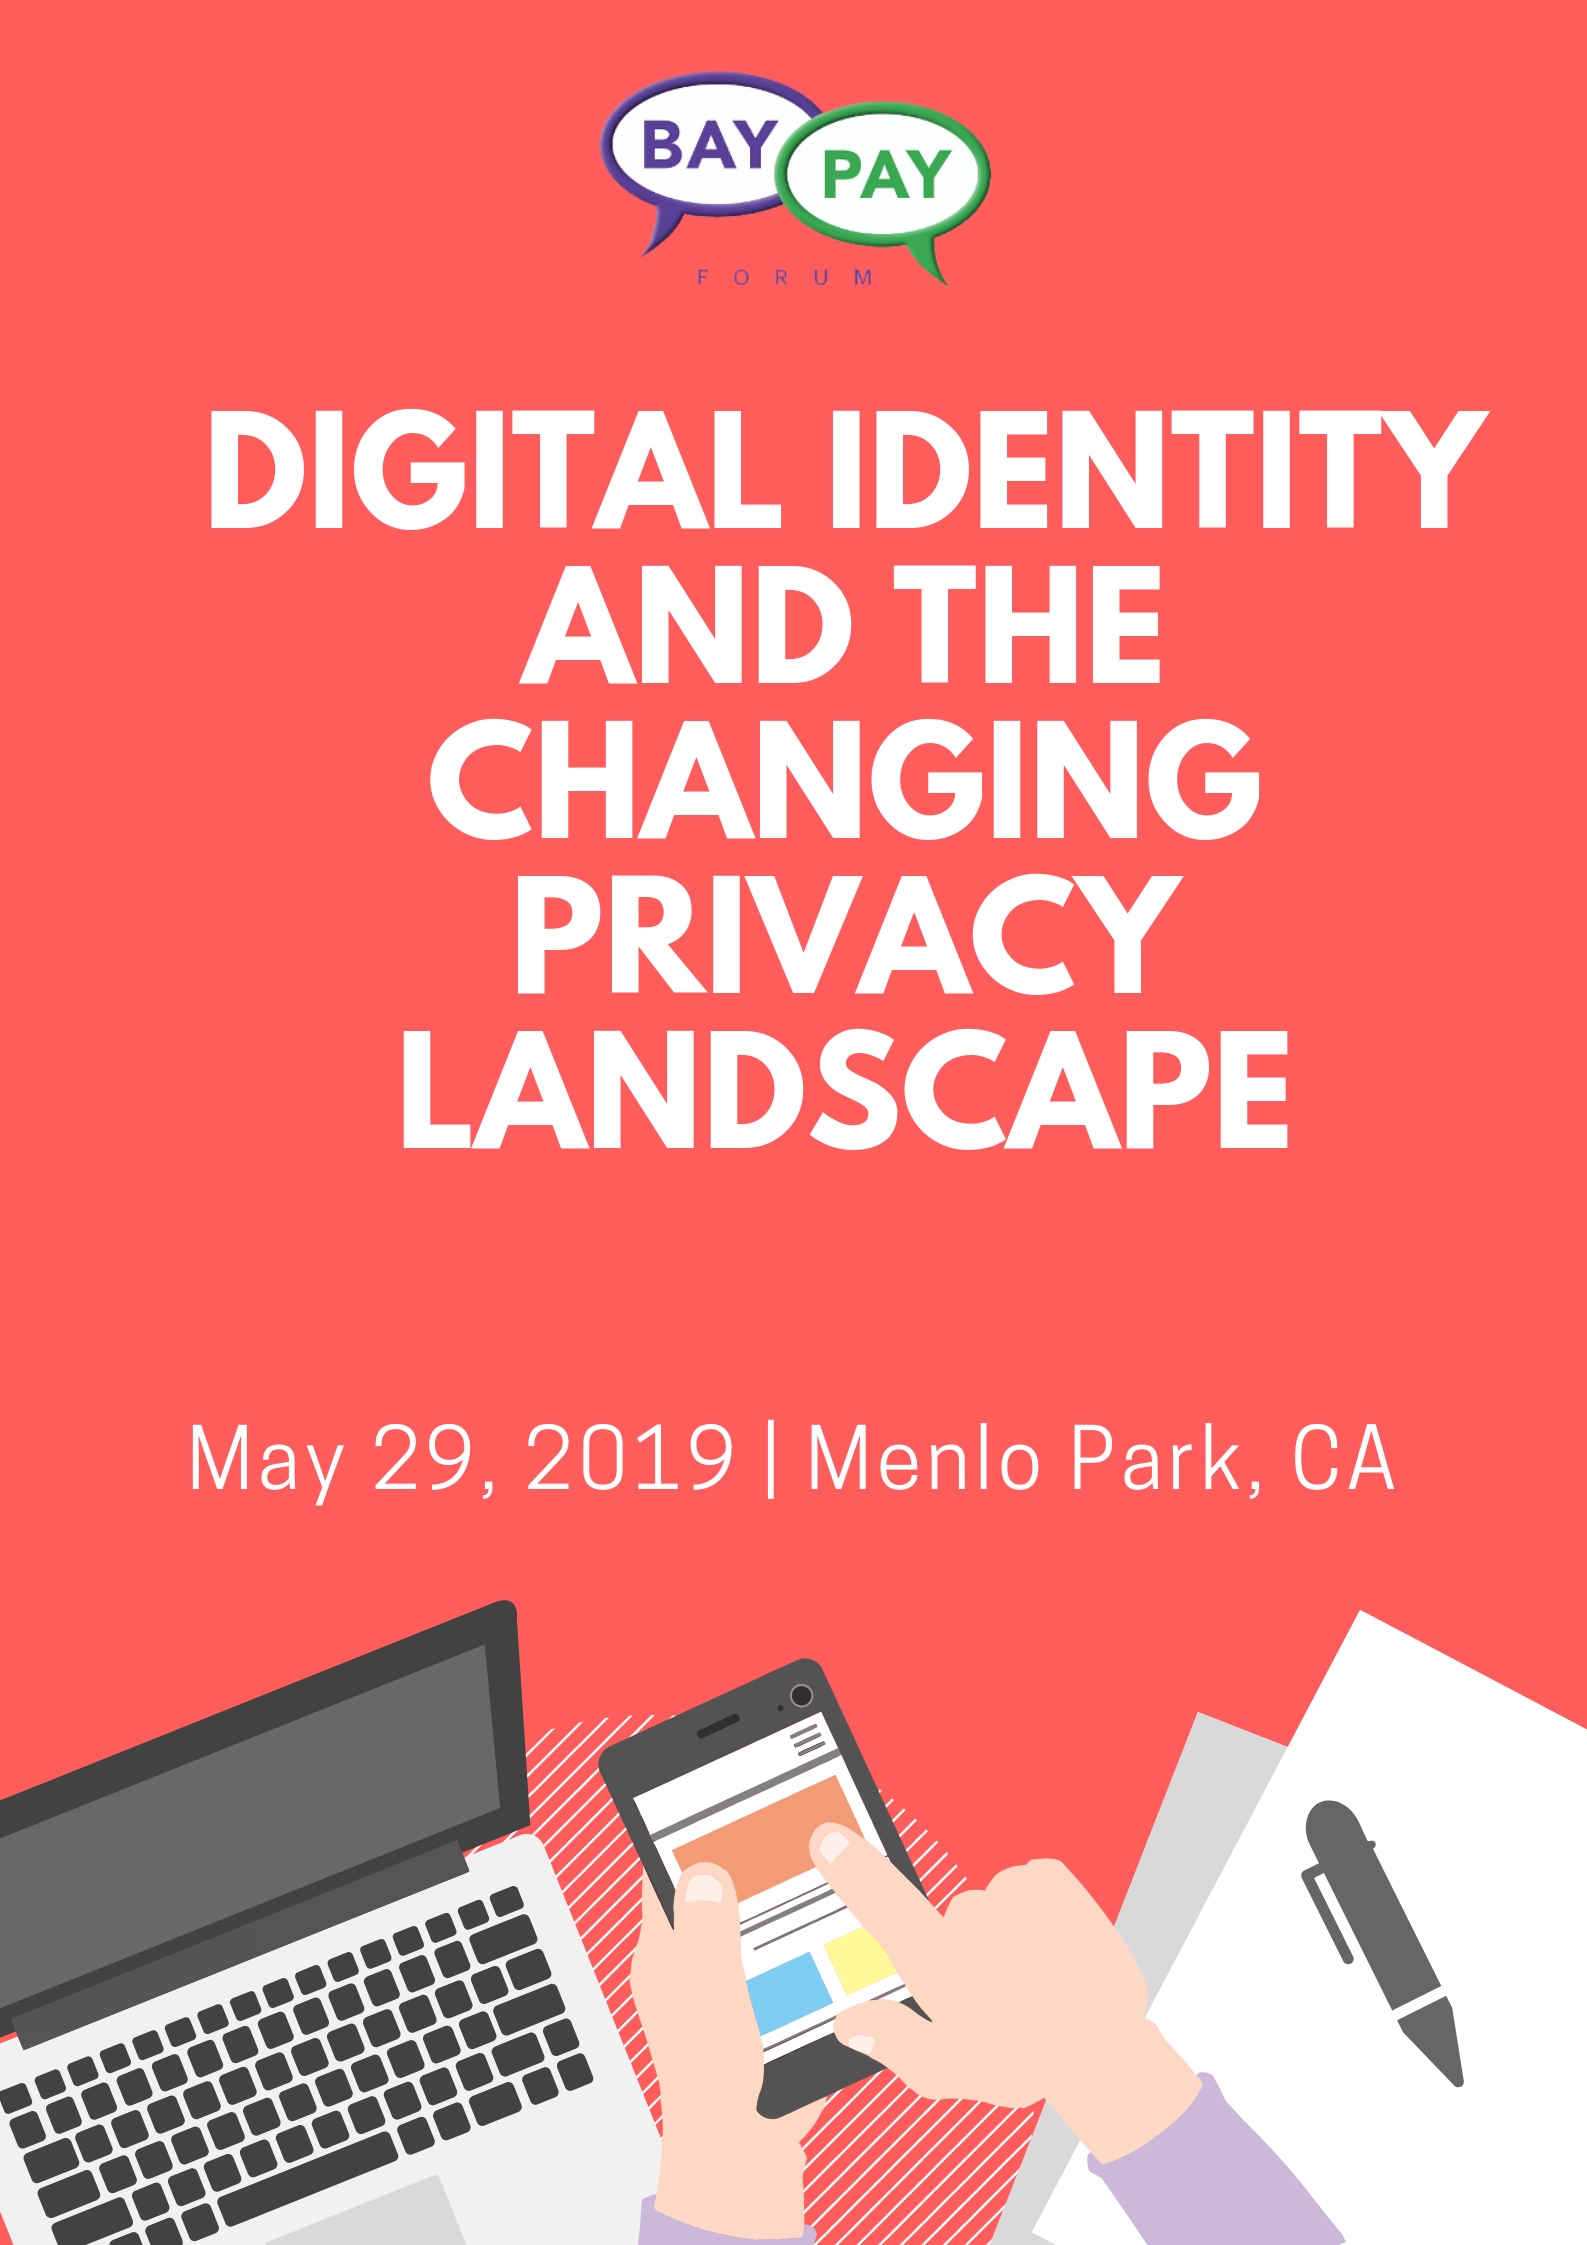 Digital Identity and the Changing Privacy Landscape